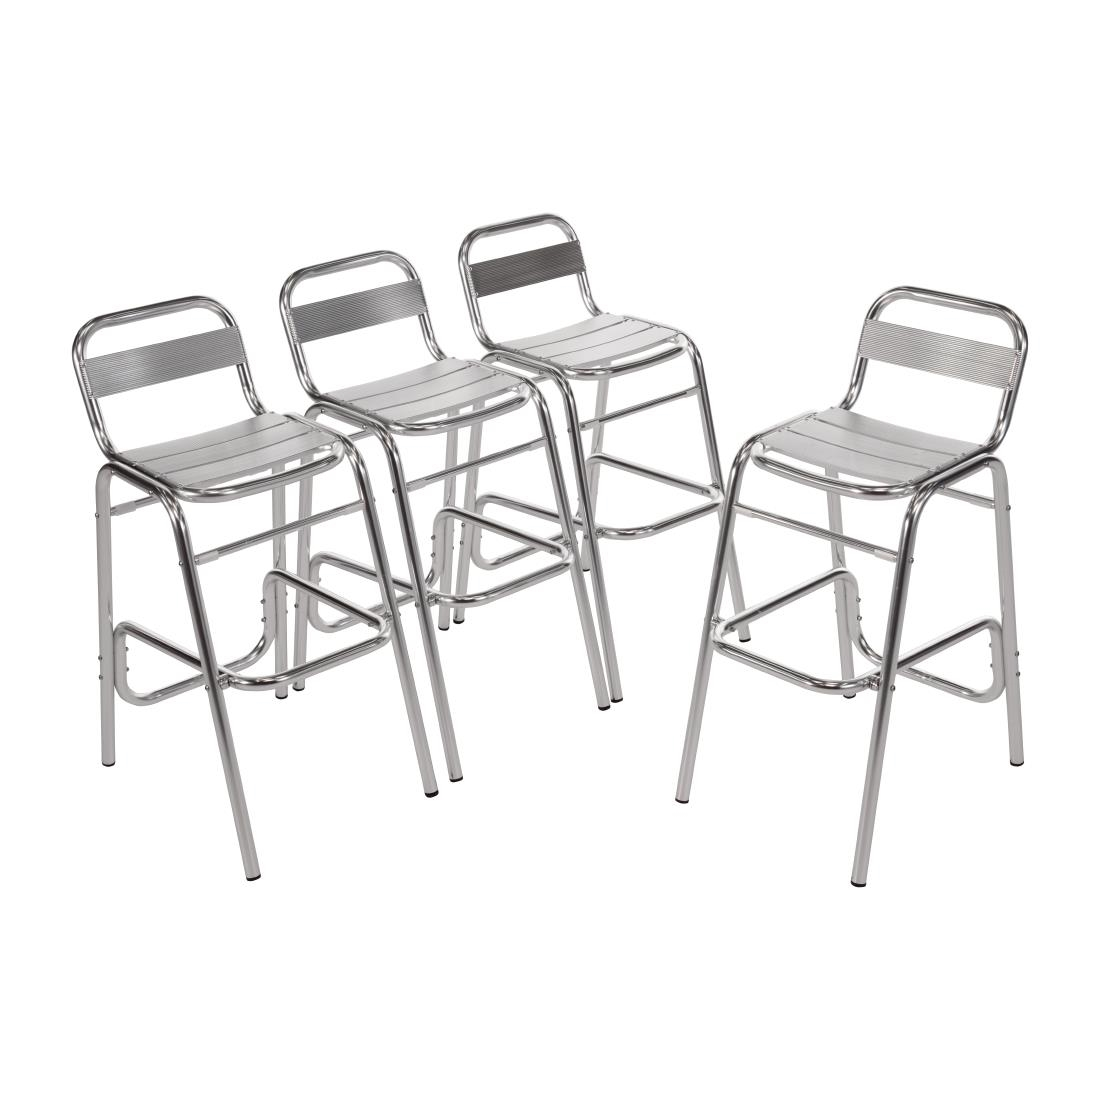 Marvelous Bolero Aluminium Bar Stools Pack Of 4 Squirreltailoven Fun Painted Chair Ideas Images Squirreltailovenorg